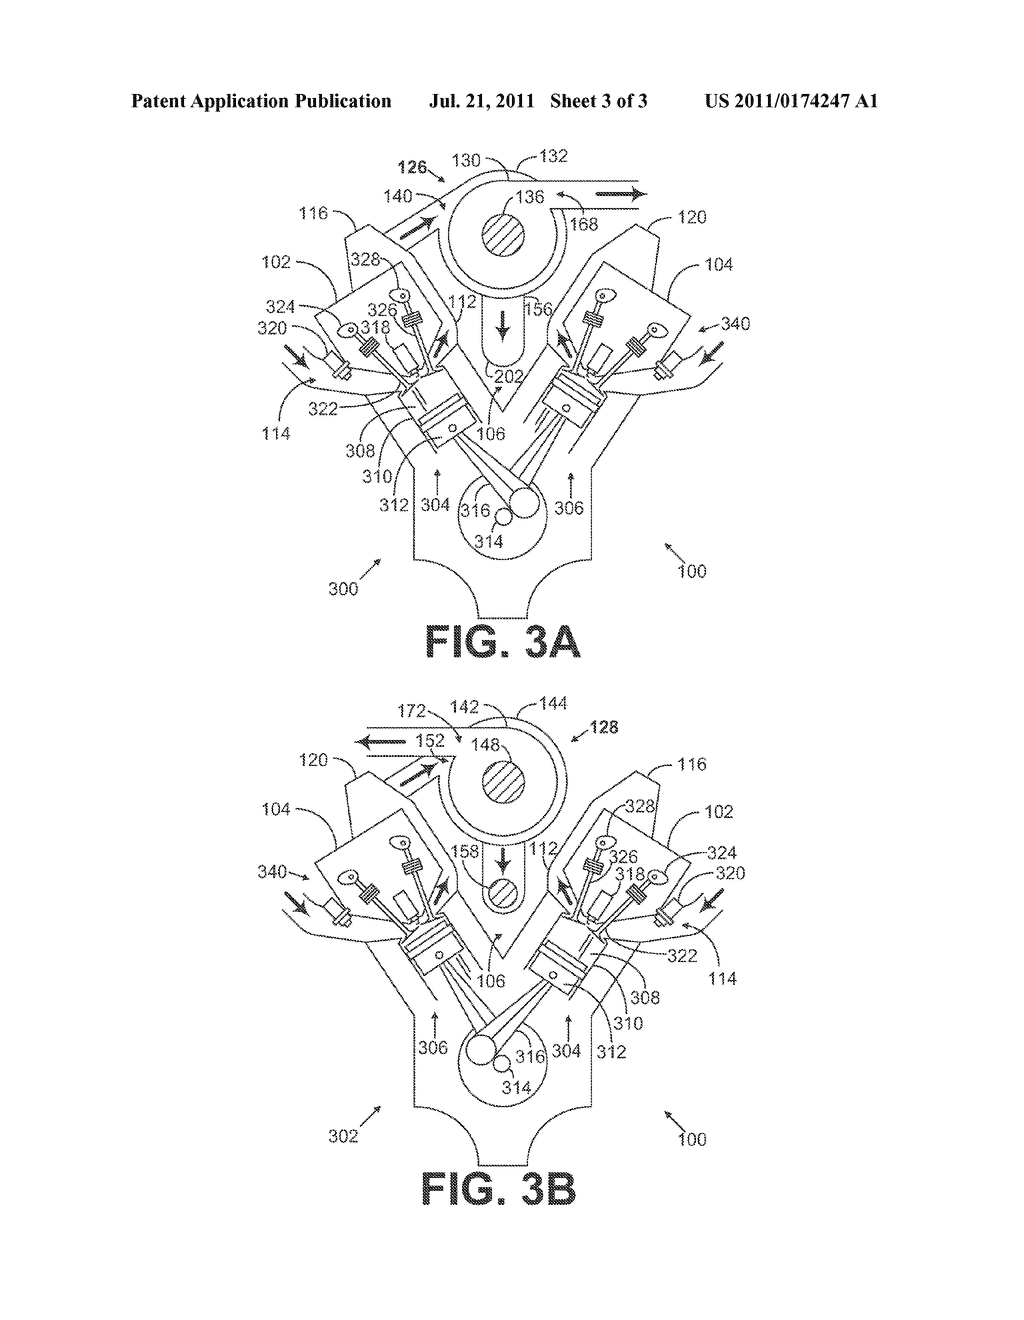 Central Turbocharger Mounting Configuration For A Twin Turbo Engine Diagram Schematic And Image 04